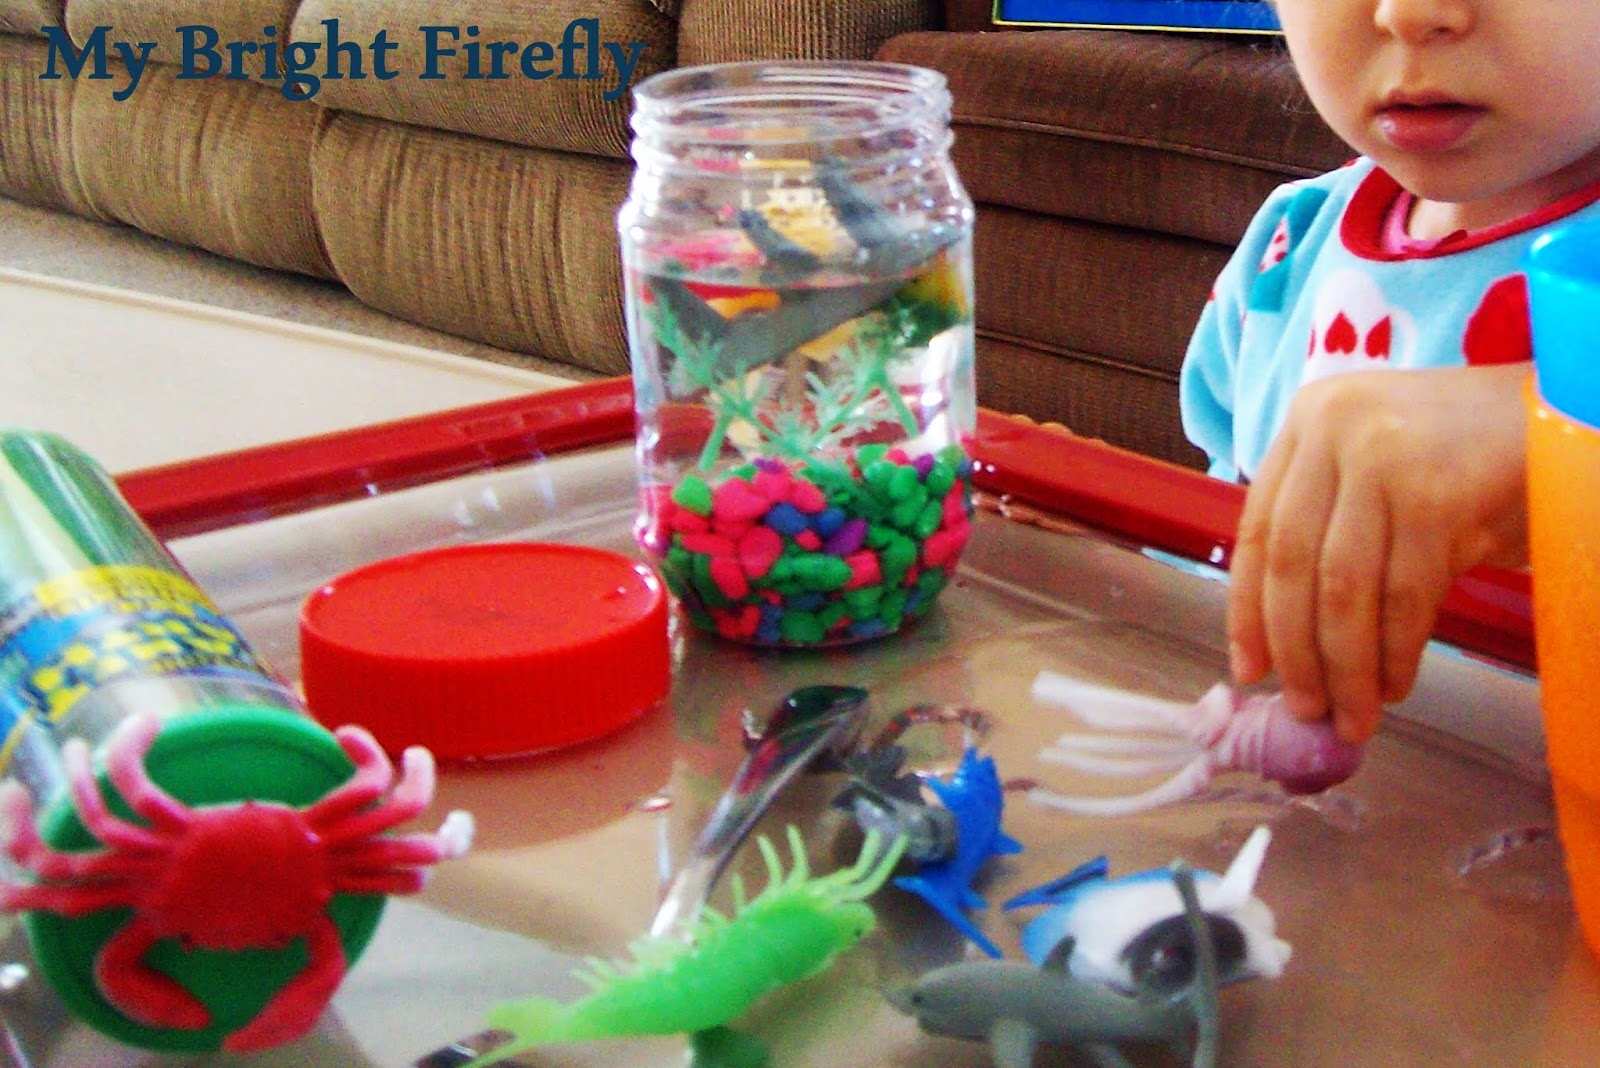 My Bright Firefly Rainbow Fish Crafts And Play For Toddlers